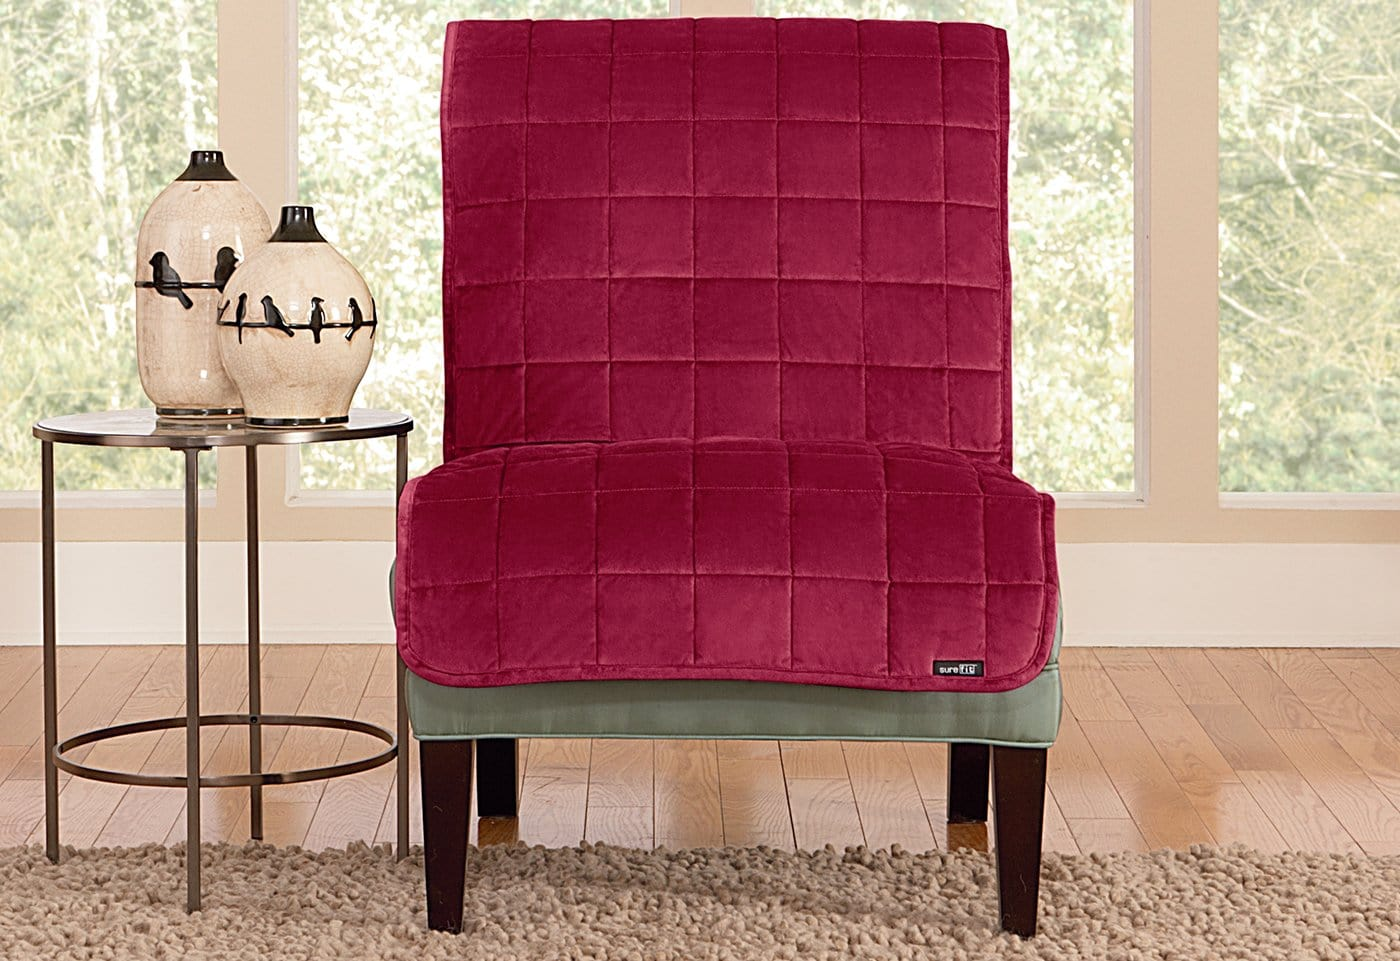 Deluxe Comfort Armless Chair Furniture Cover Microban® Antimicrobial Pet Furniture Cover Machine Washable - Chair / Burgundy